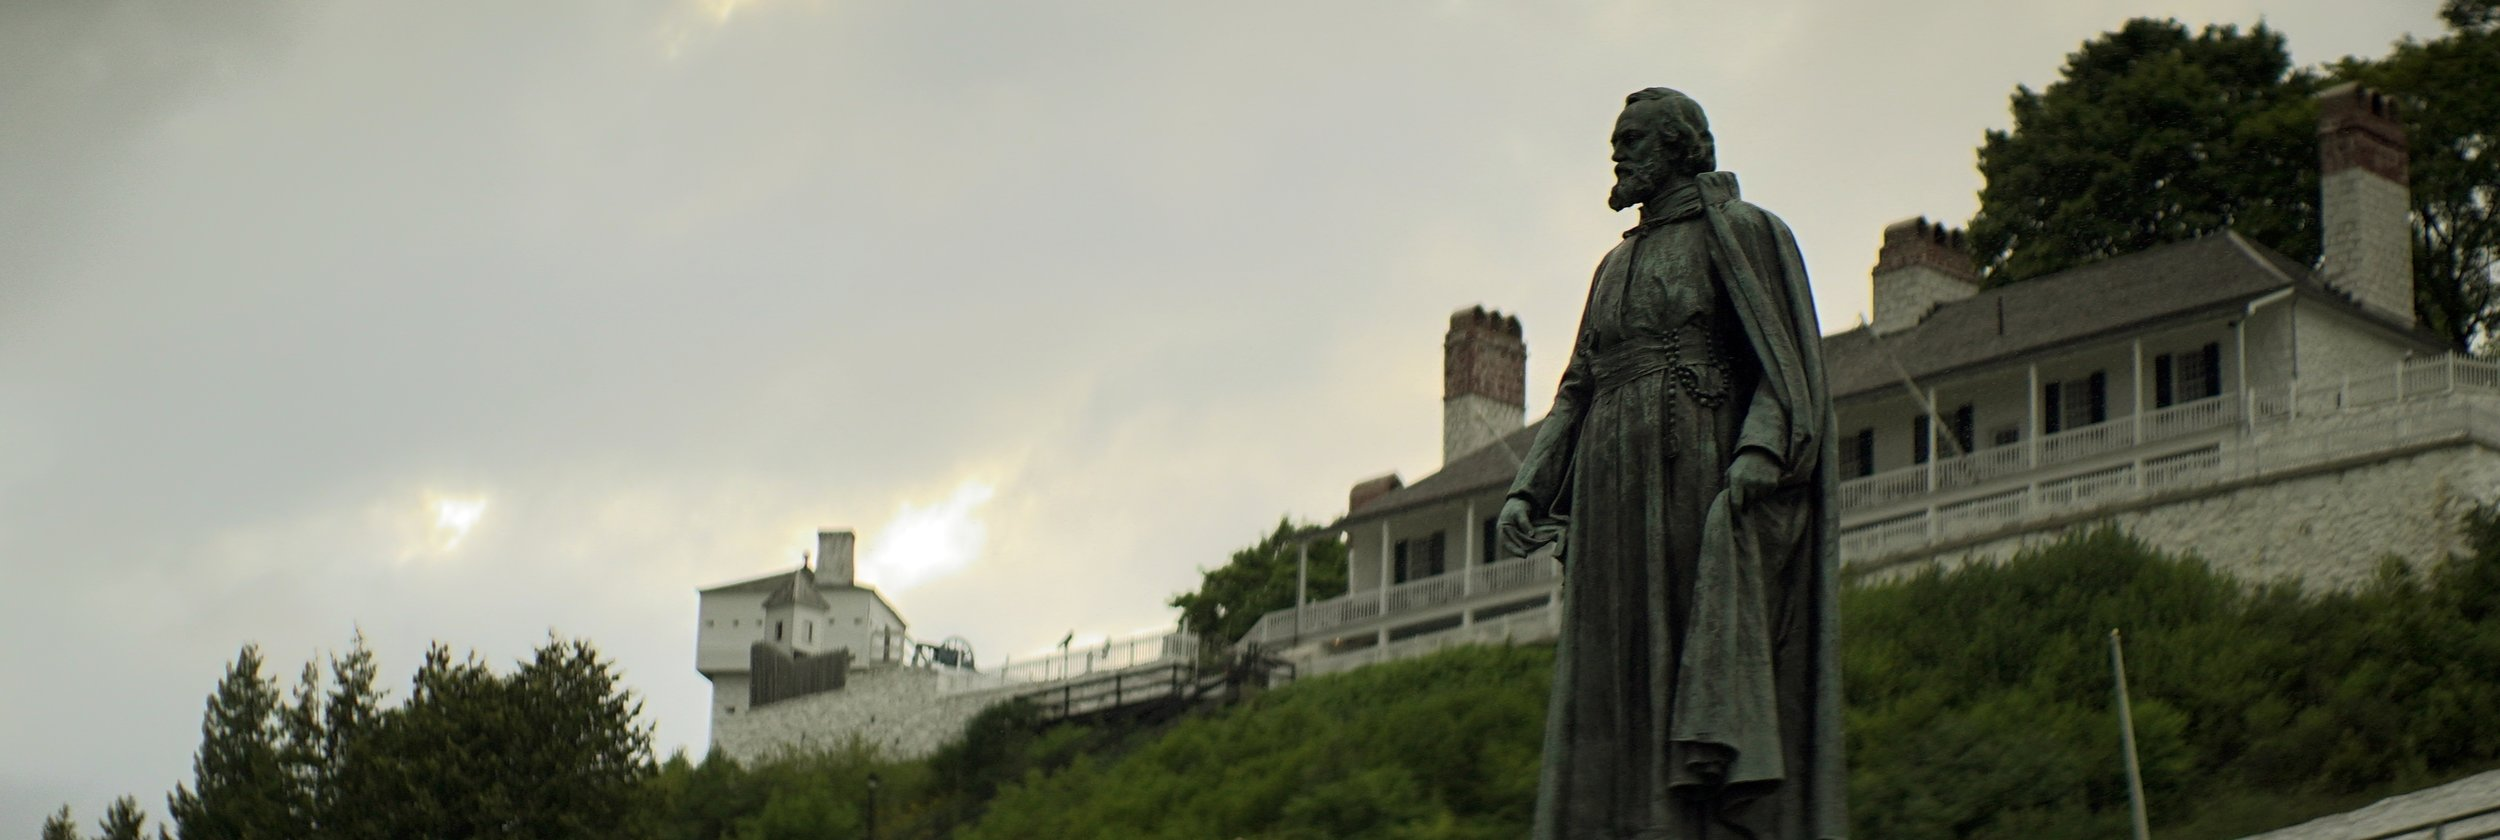 Lomo 100mm anamorphic lens | Statue of Father Marquette in Marquette Park - Mackinac Island, MI - Photo by: Keith Nickoson